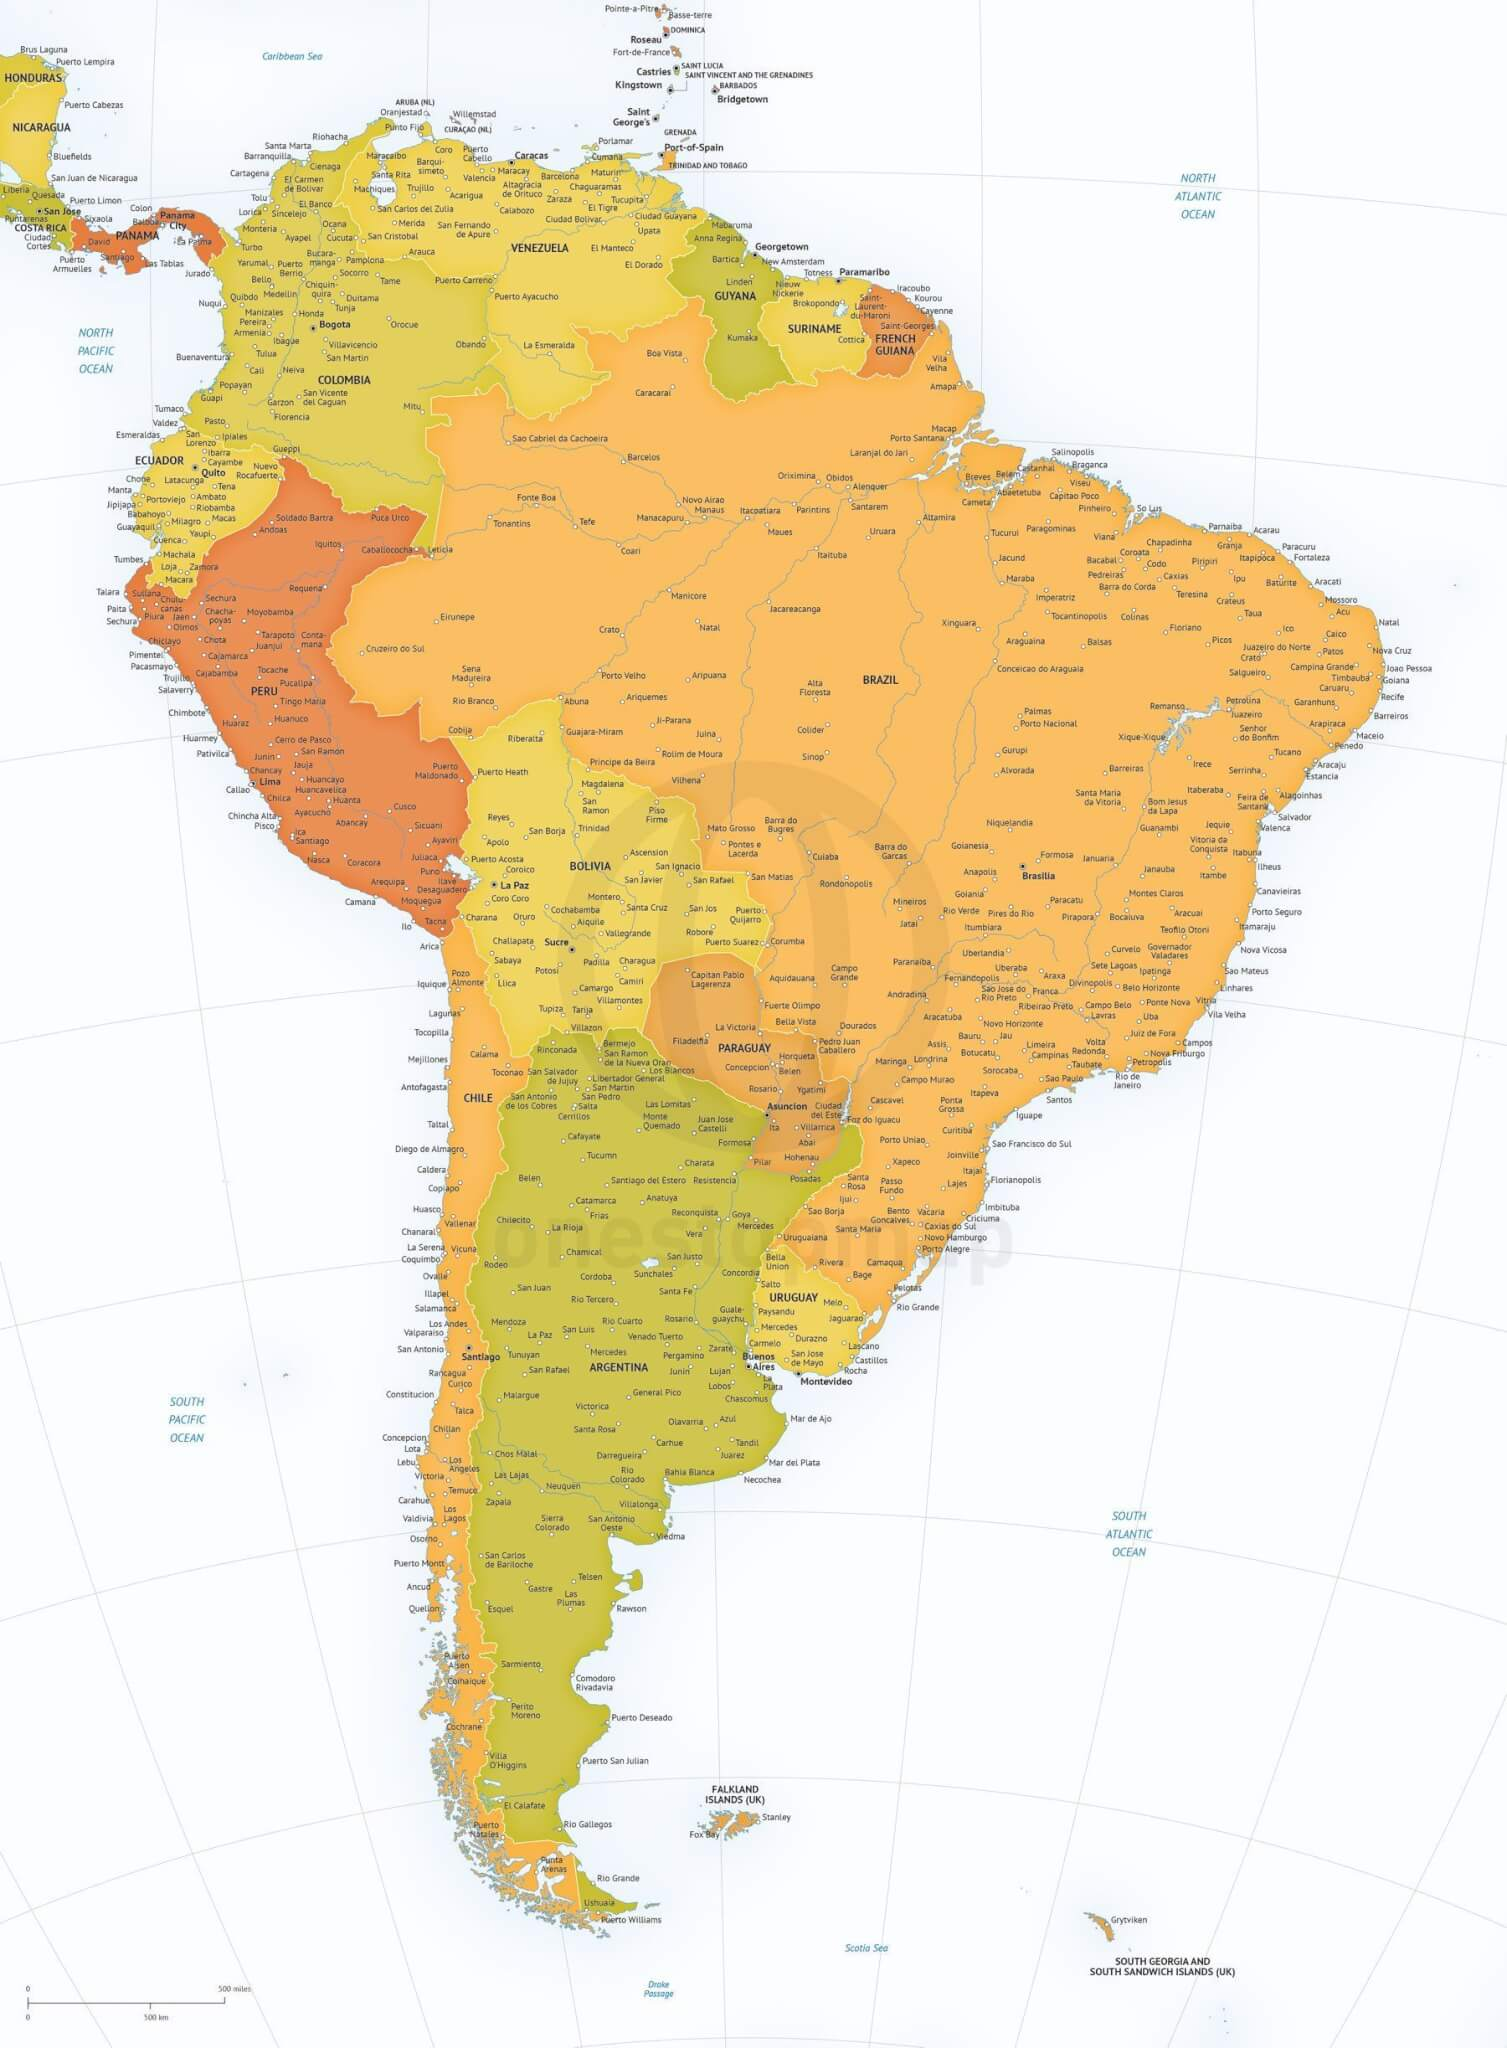 Map of South America political